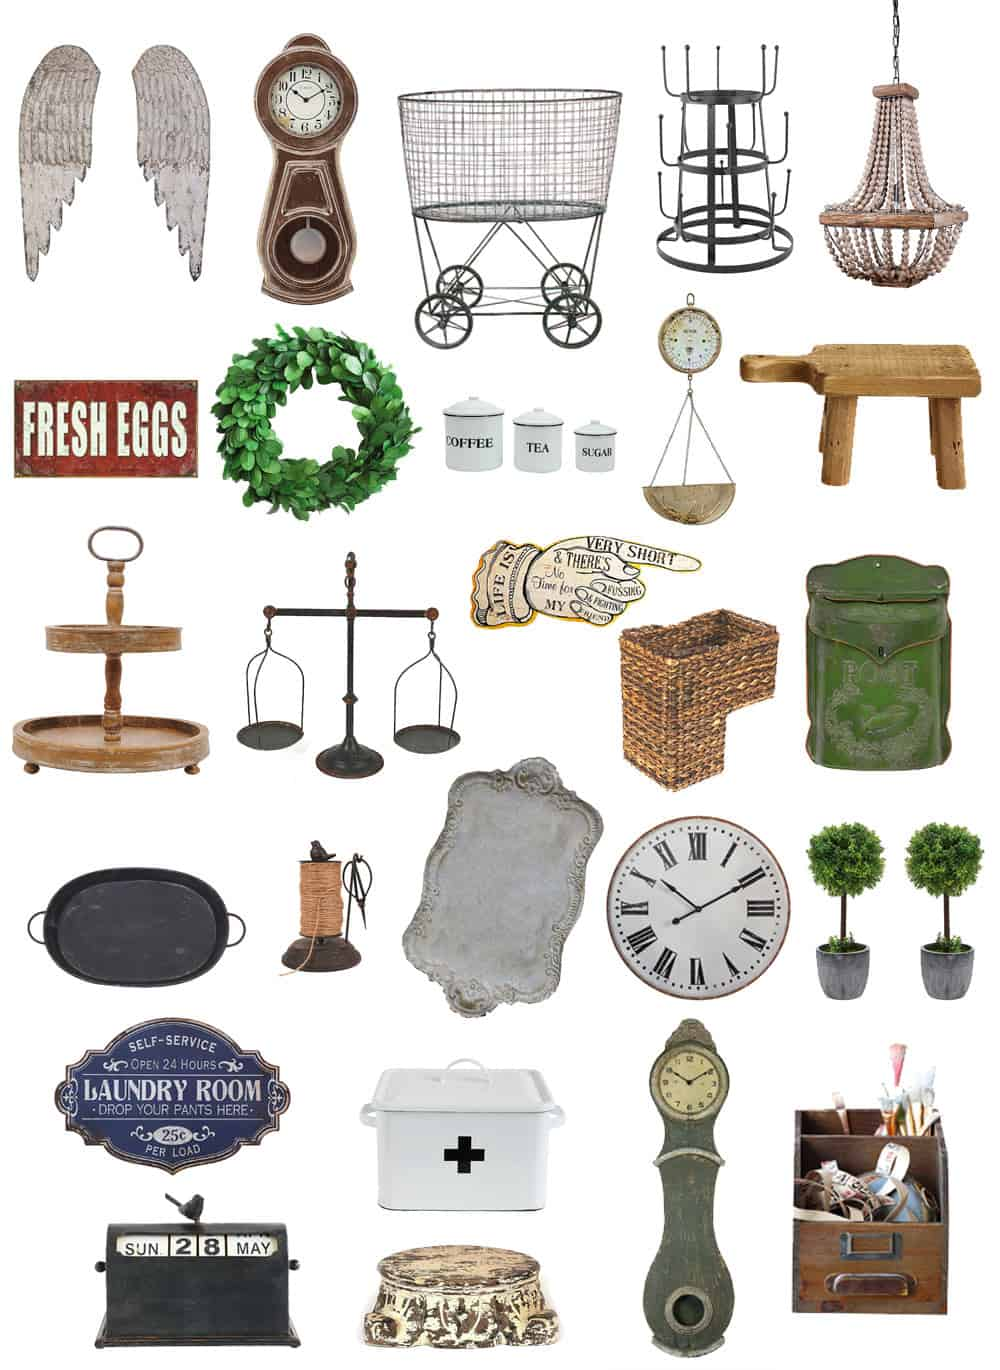 Do you love the farmhouse look as much as we do? Want to get yourself some great finds at a fab price? Without leaving your house? Then you're going to love these 26 Farmhouse Finds from Amazon!